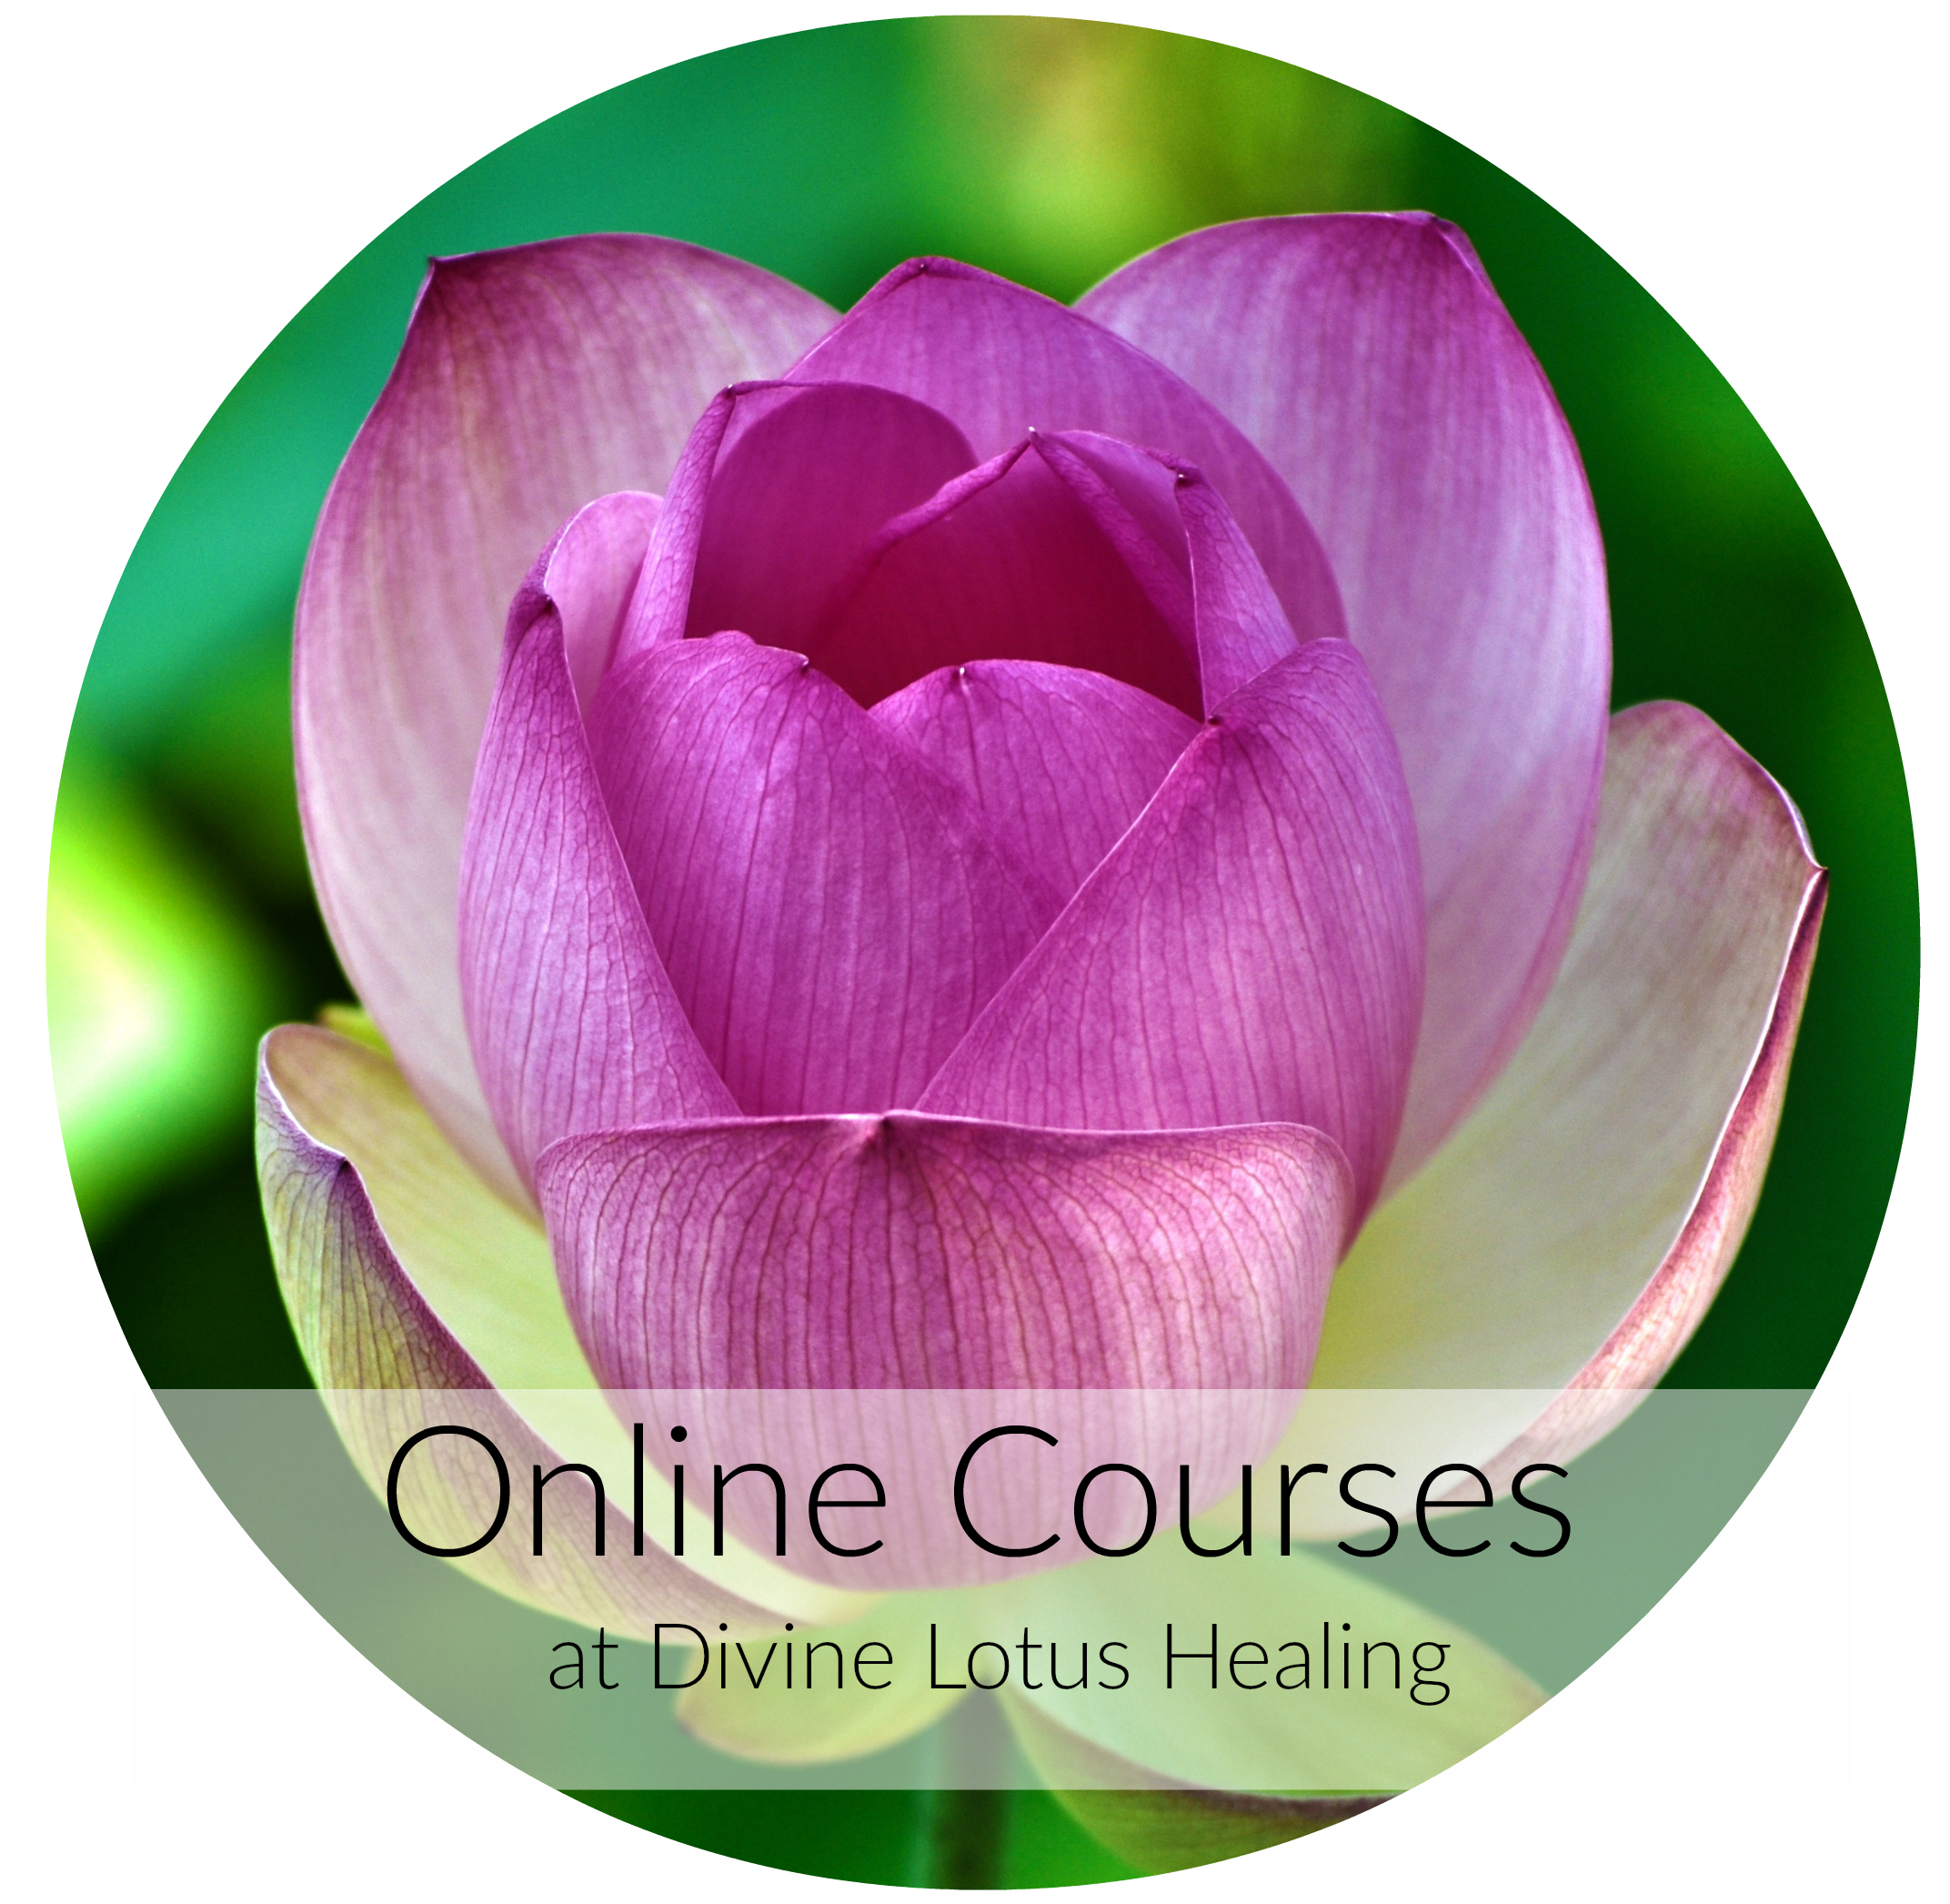 Online Courses at Divine Lotus Healing